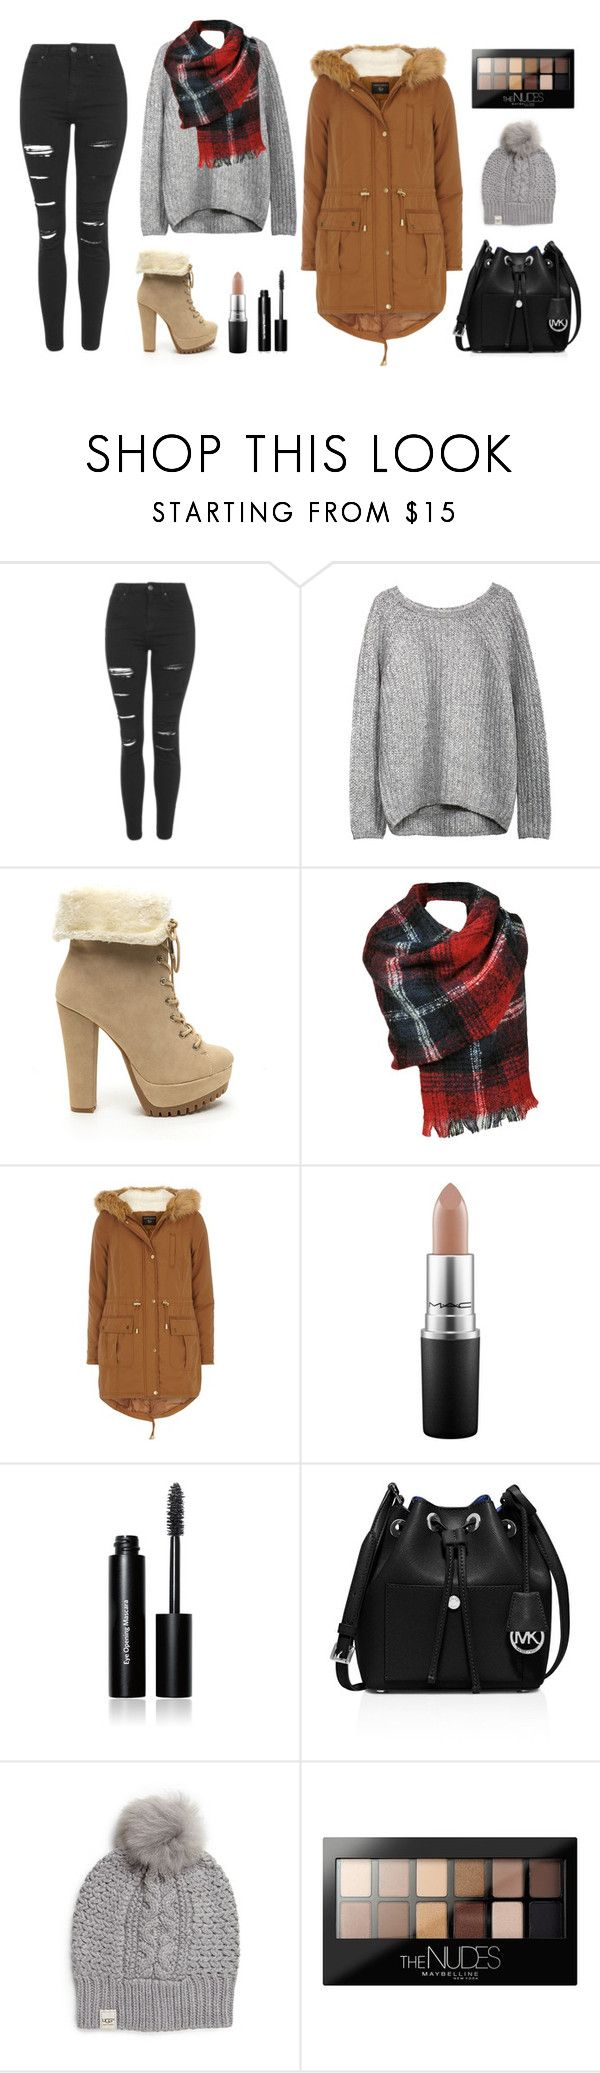 """""""cold winter"""" by milan-inez on Polyvore featuring Topshop, Black Rivet, Dorothy Perkins, MAC Cosmetics, Bobbi Brown Cosmetics, MICHAEL Michael Kors, UGG Australia, Maybelline, Boots and winteroutfit"""